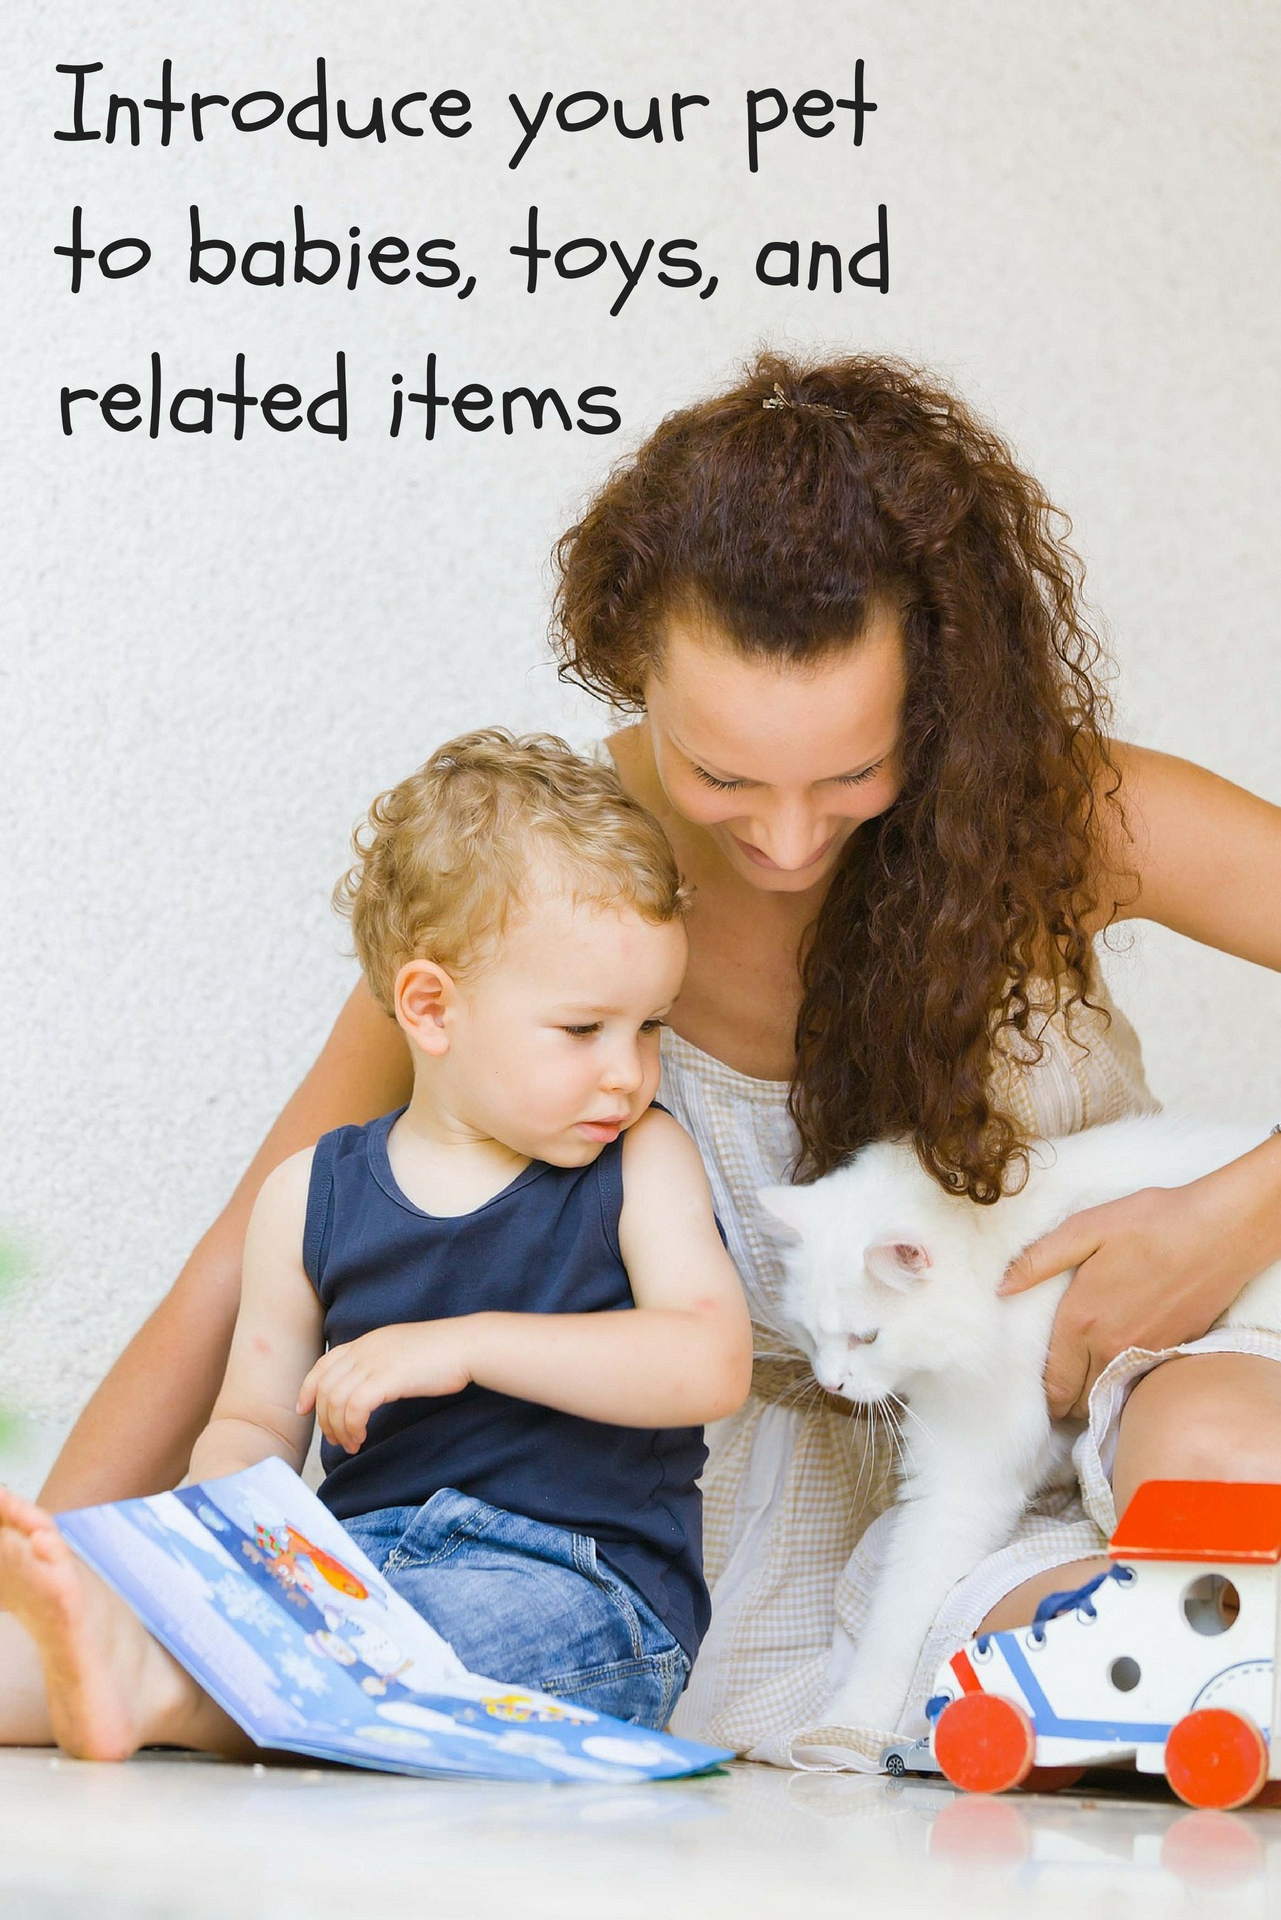 Introduce your pet to babies, toys, and related items